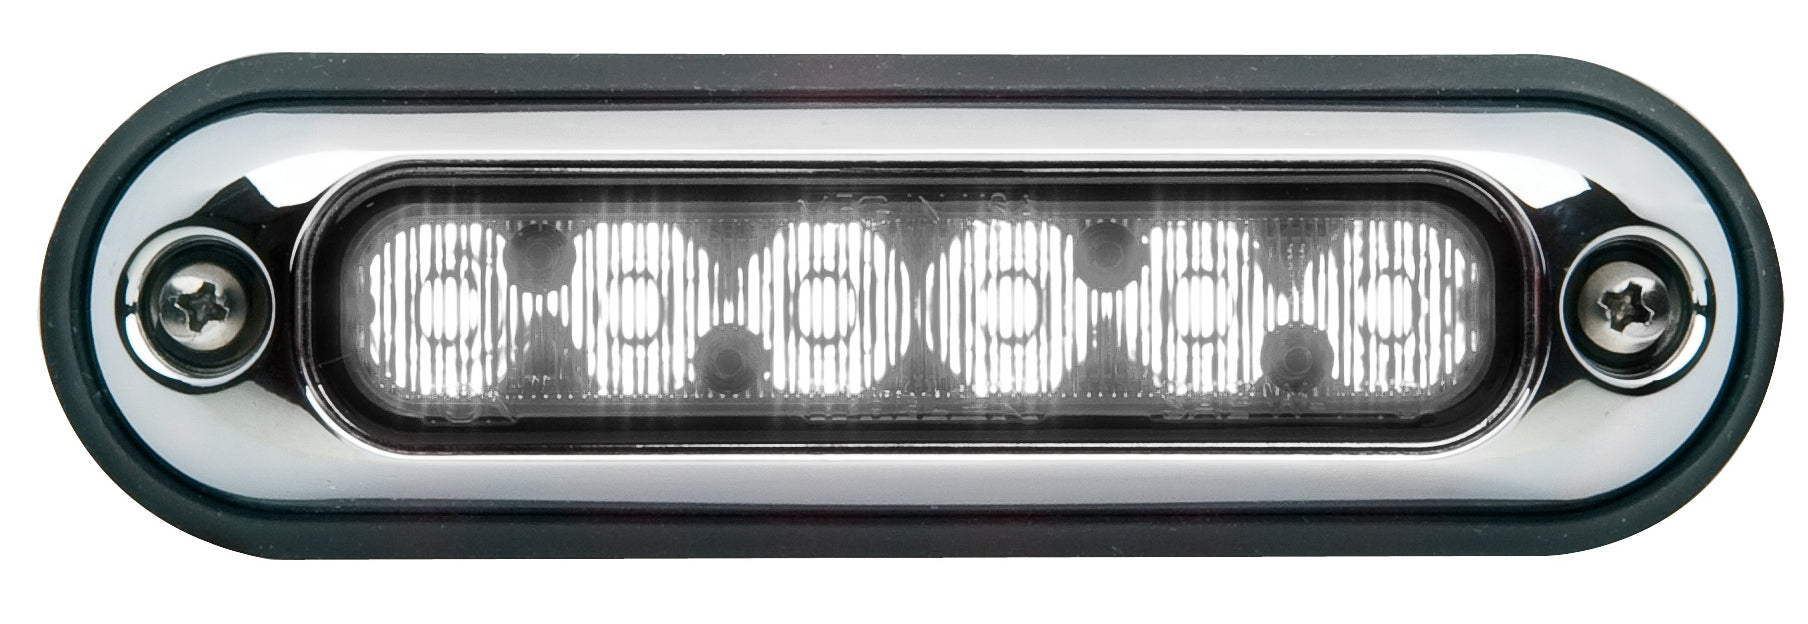 Whelen ION™ T-Series™ Linear Super-LED®, TIONFC